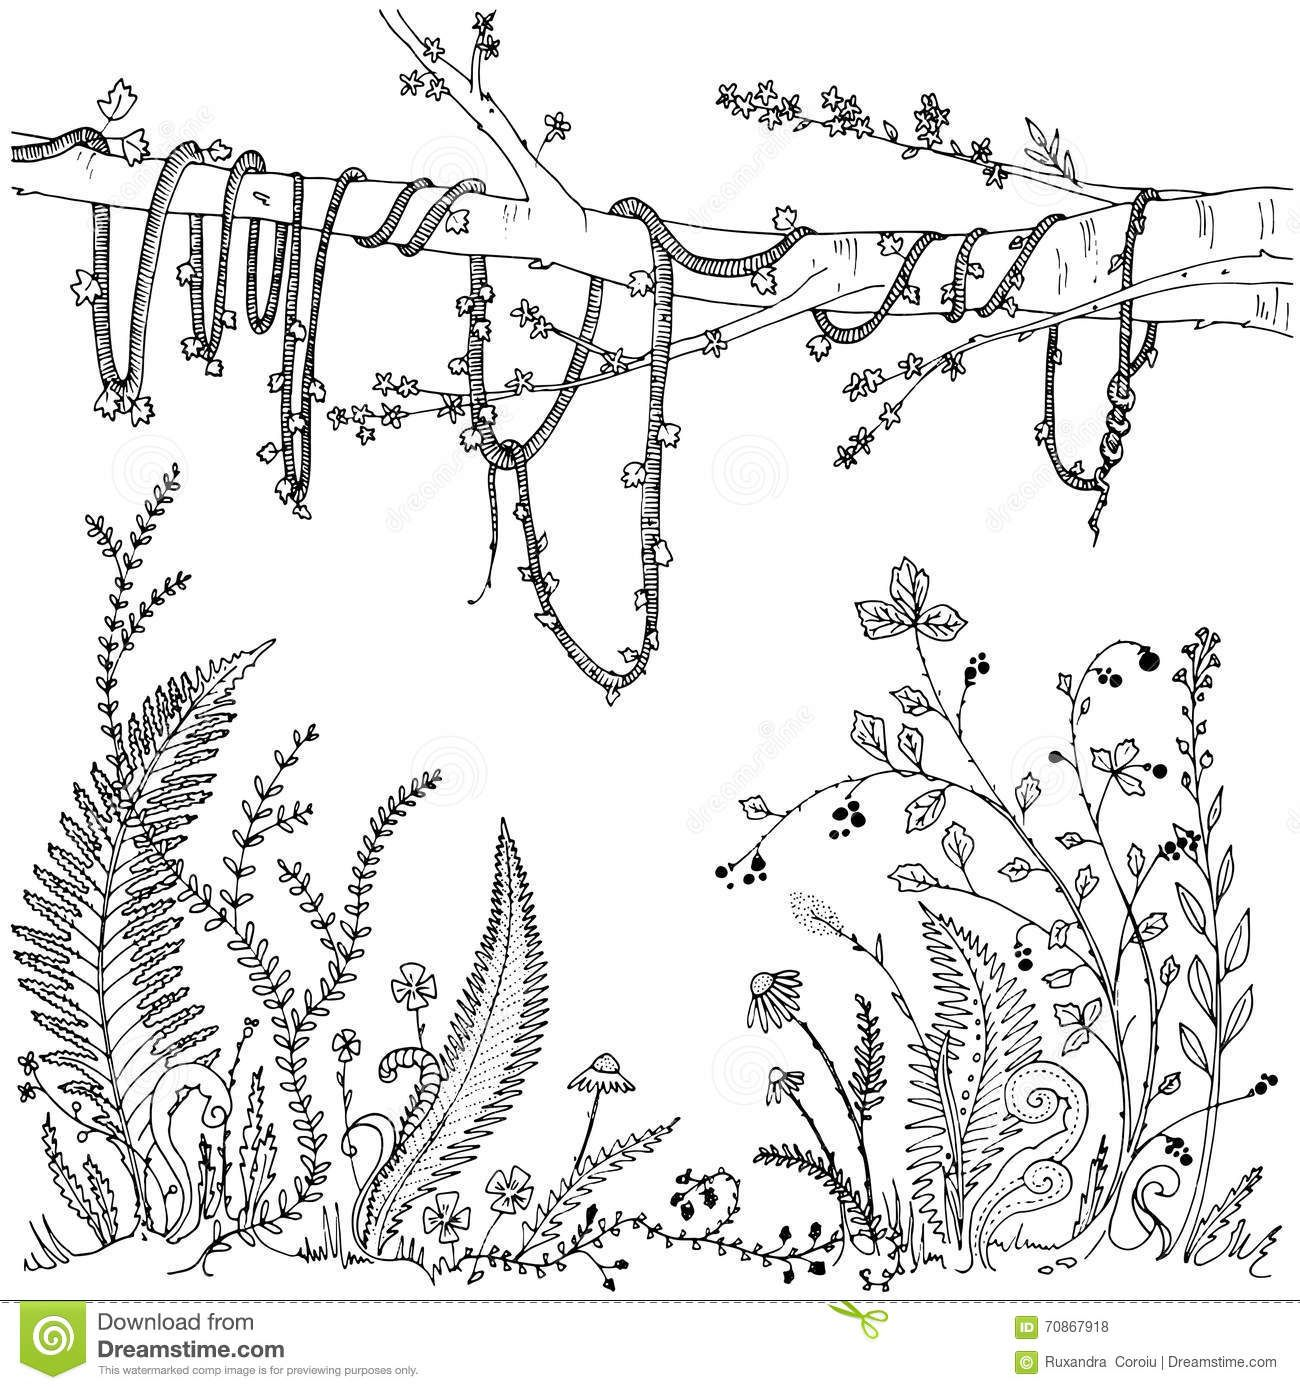 Ferns Flowers Vines And Berries In A Forest Dense Vegetation Printable Coloring Page For Adults Coloring Pages People Coloring Pages Flower Coloring Pages